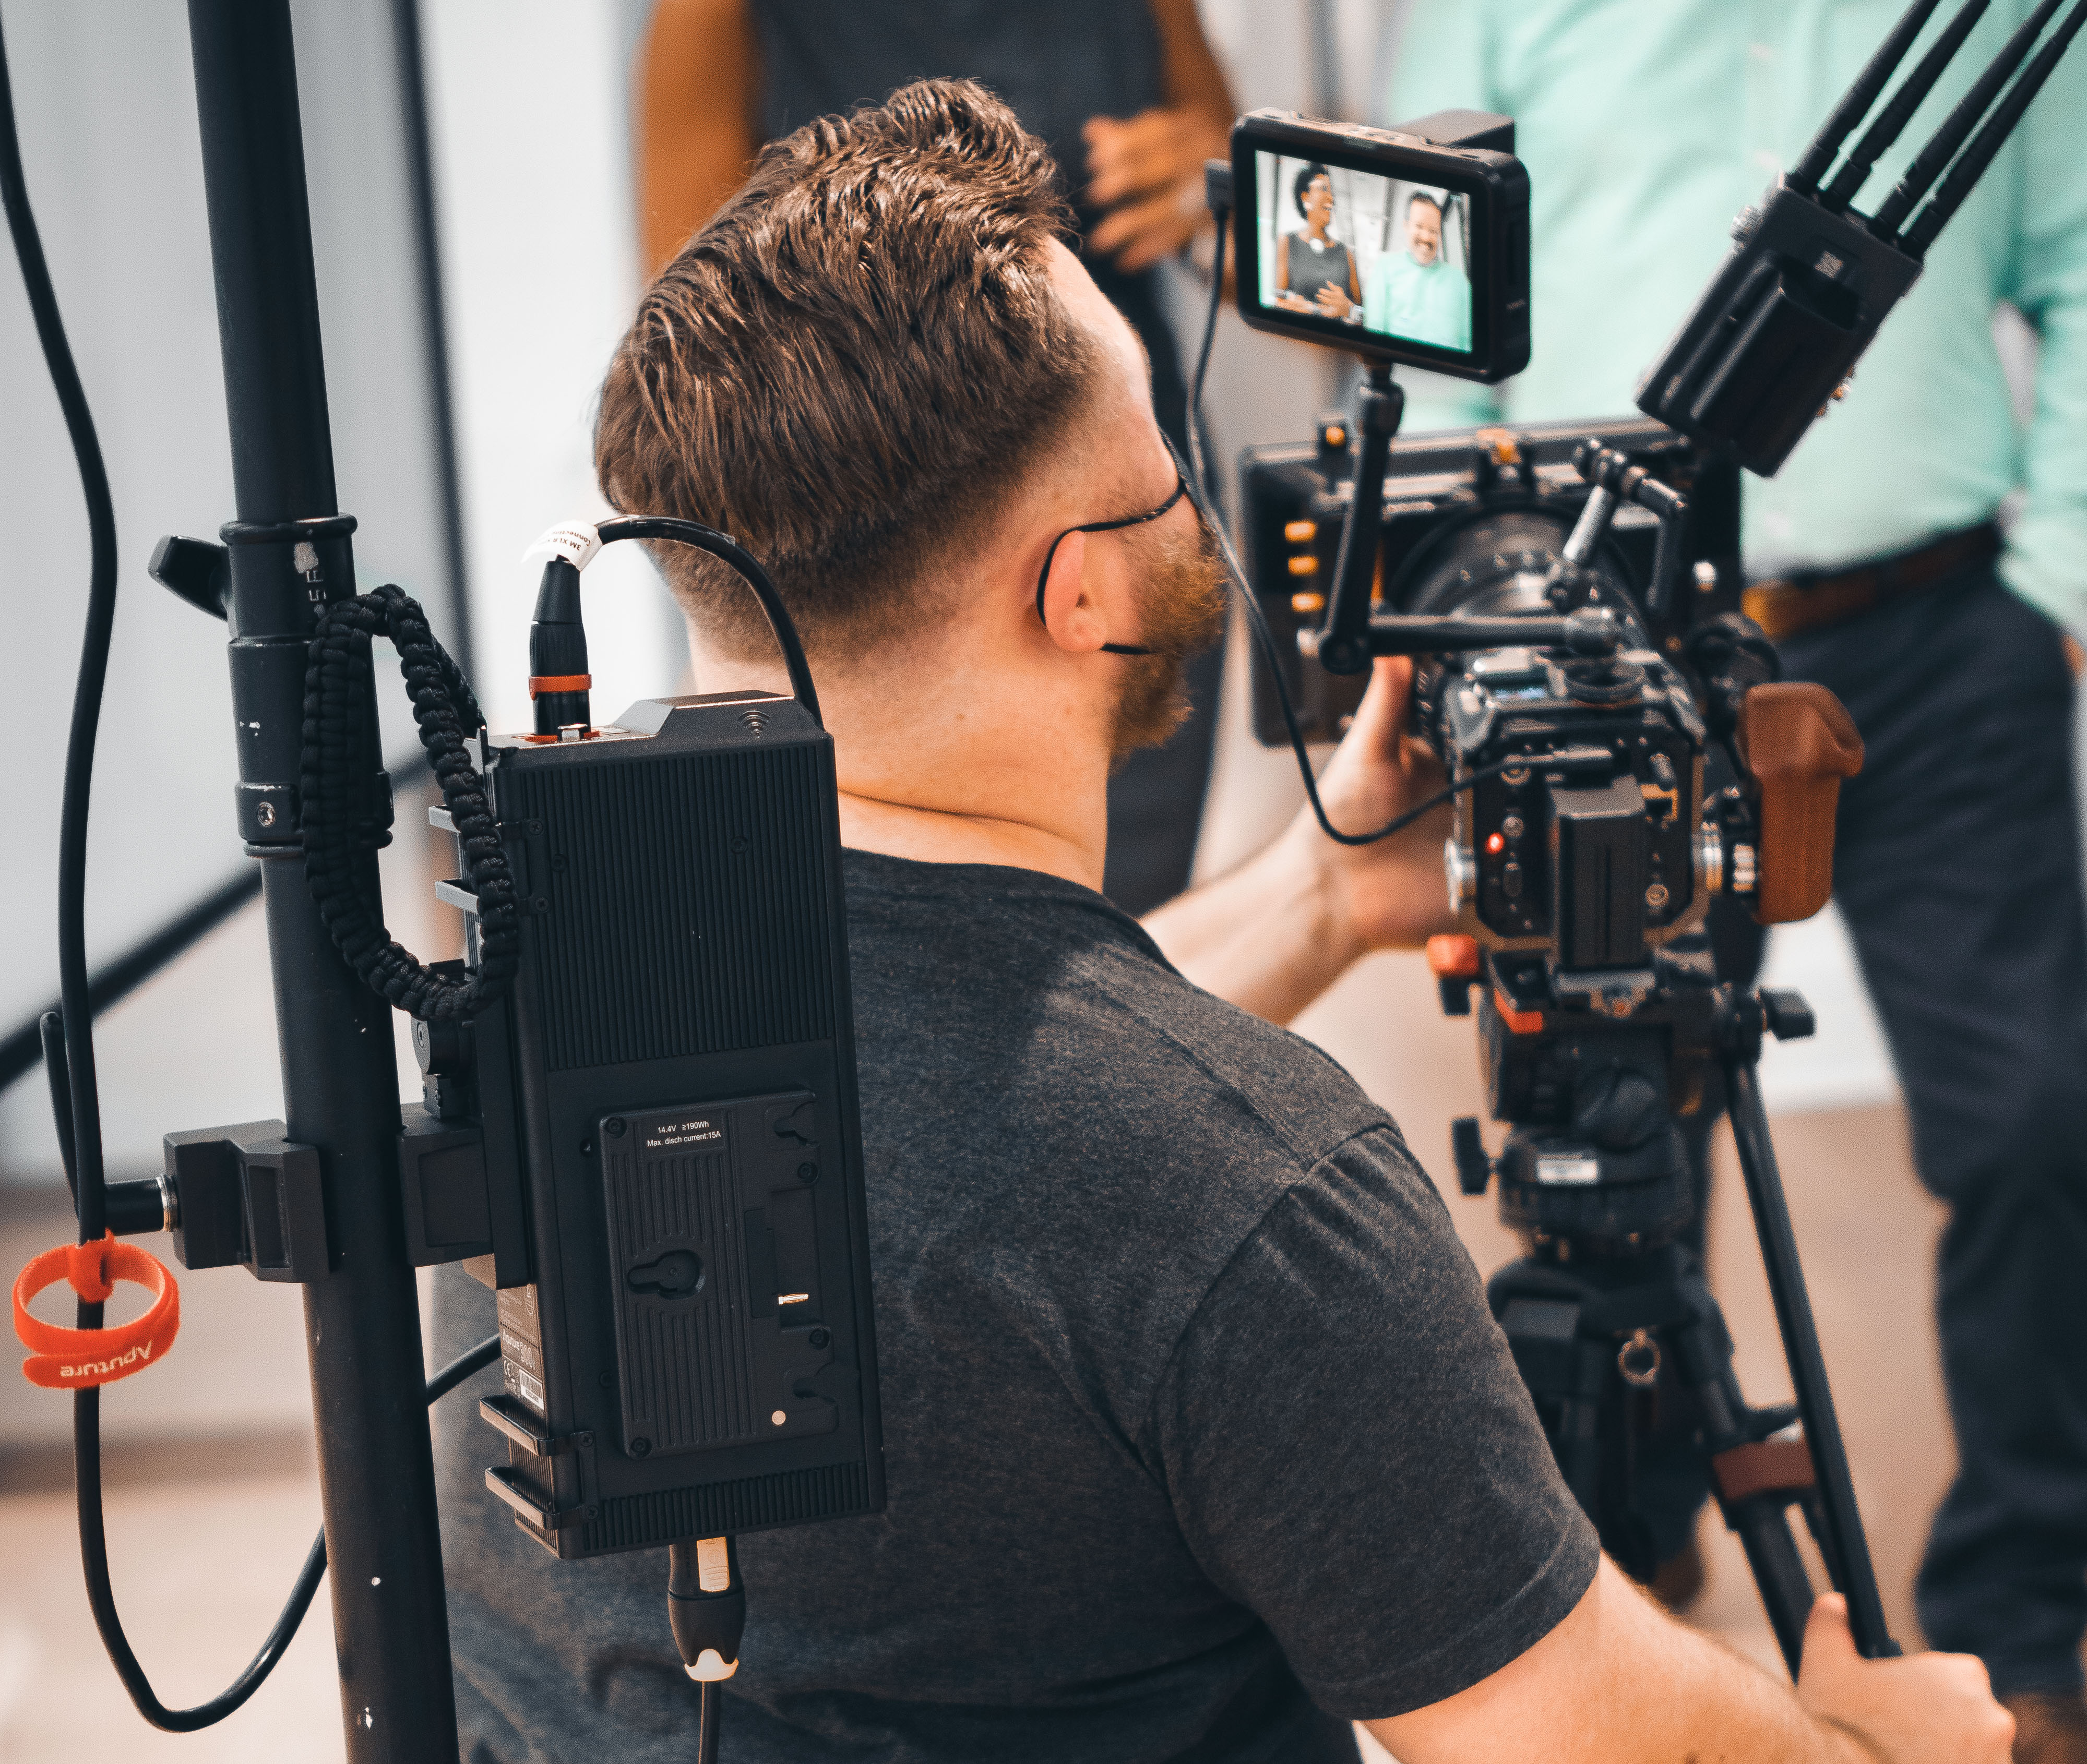 Professional video production services at your fingertips